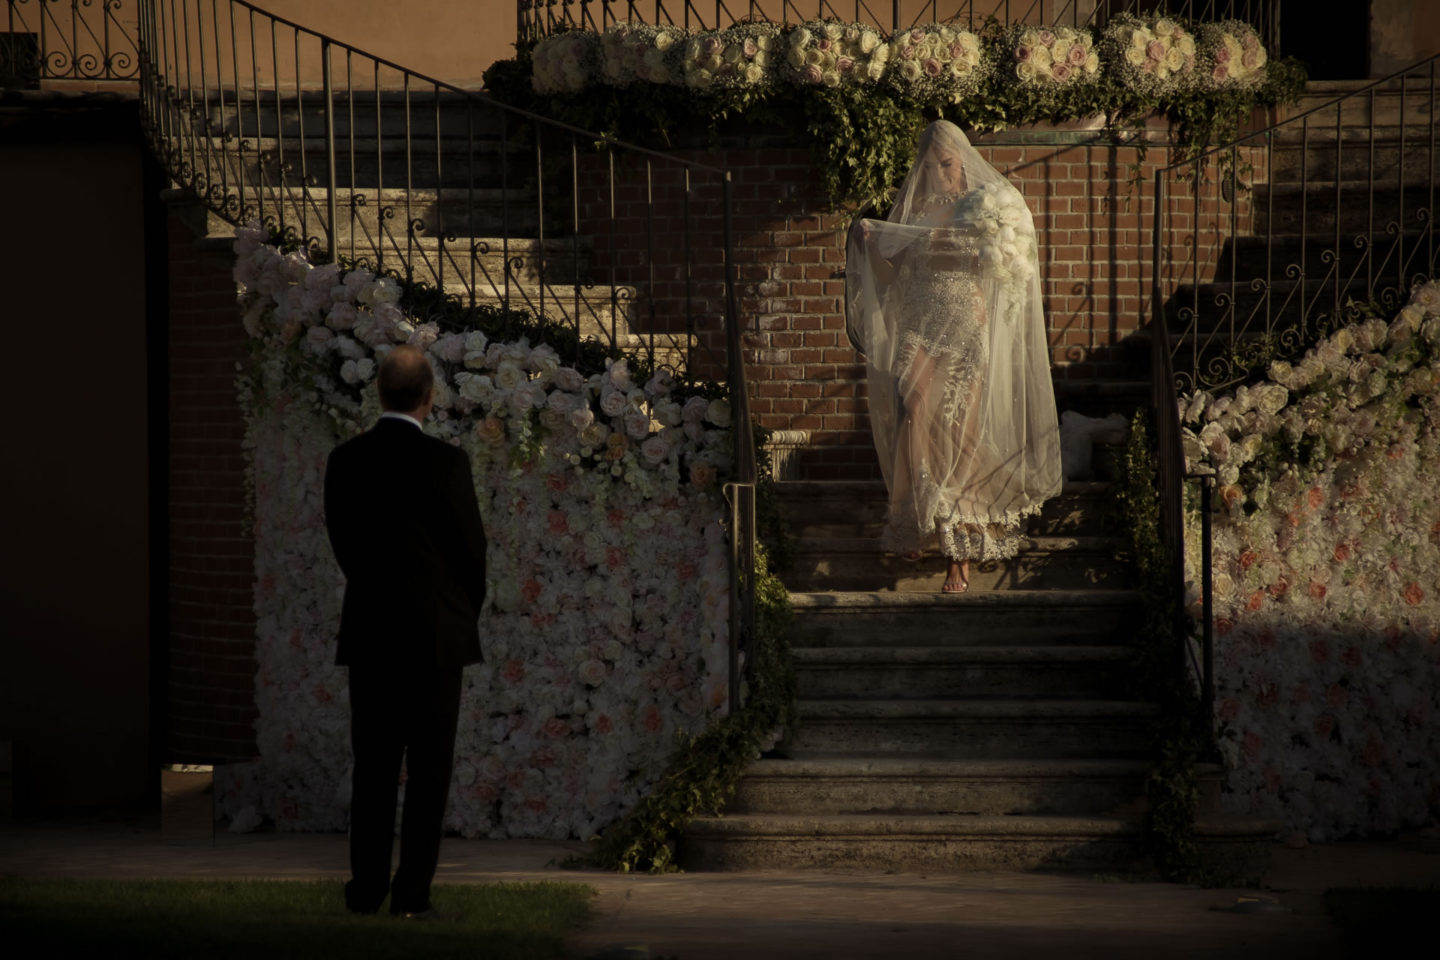 Entrance :: Exciting wedding in the countryside of Siena :: Luxury wedding photography - 33 :: Entrance